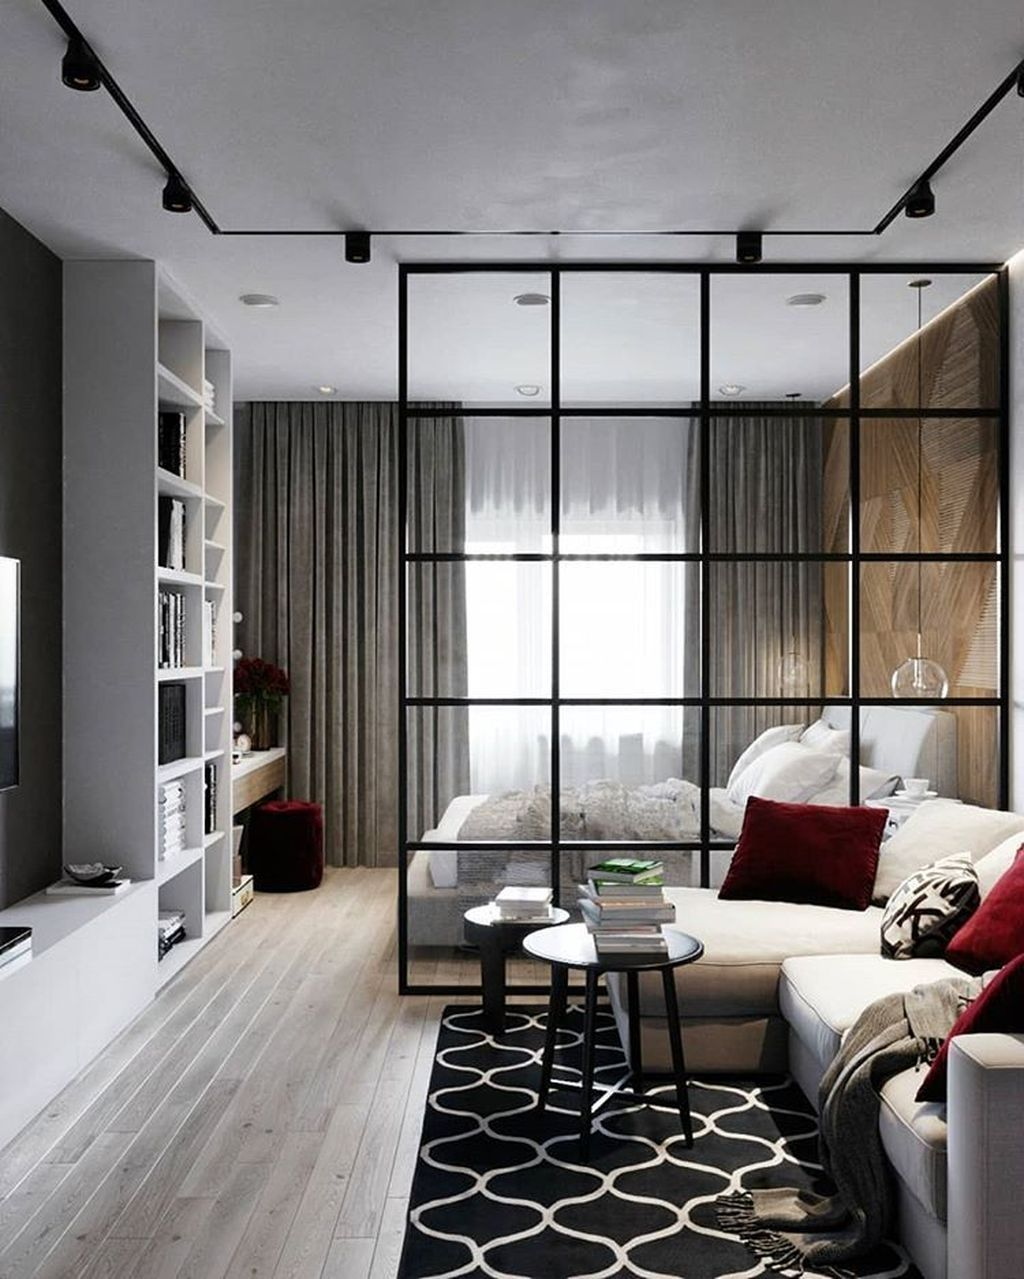 Affordable Interior Design For Beginners Ideas